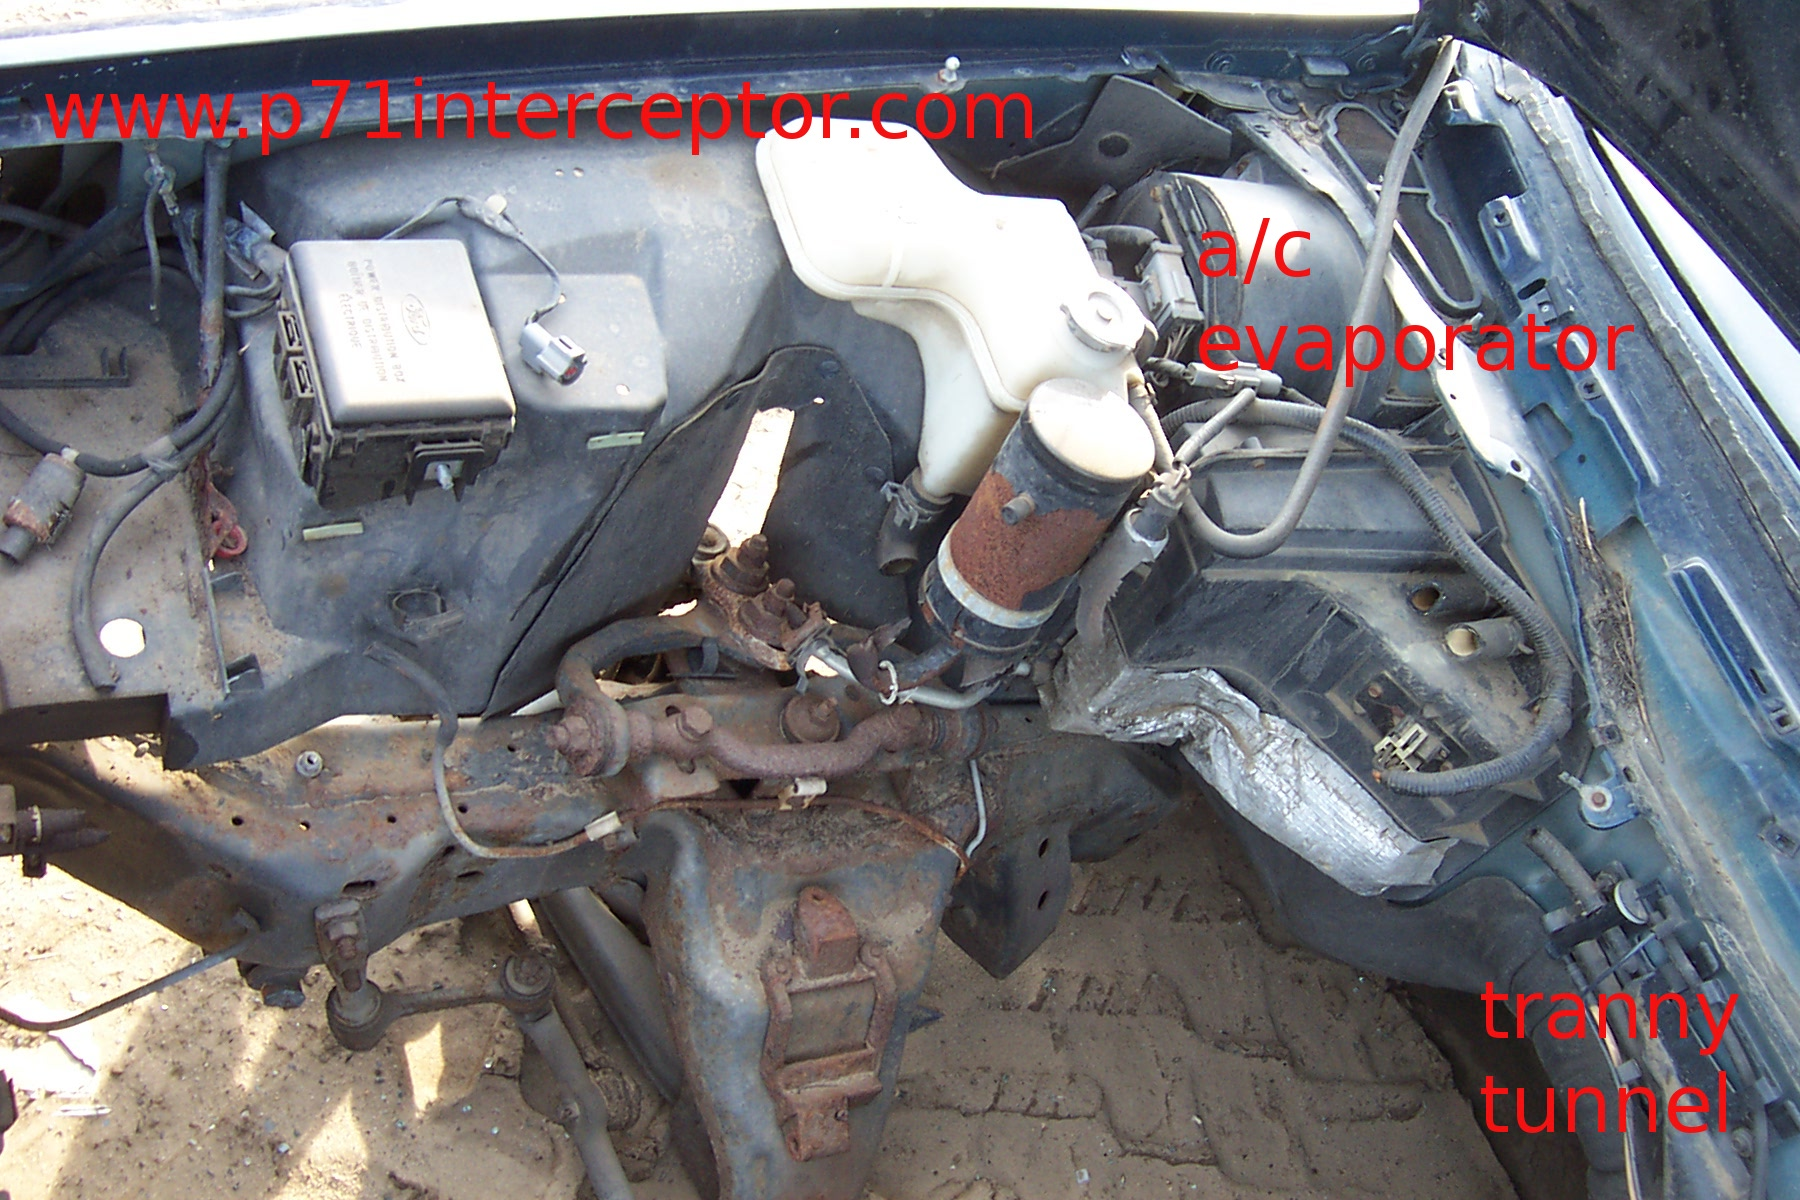 hight resolution of and a few pictures of a 2000 mercury grand marquis engine transmission with the engine mounts and frame cradle brackets still attached